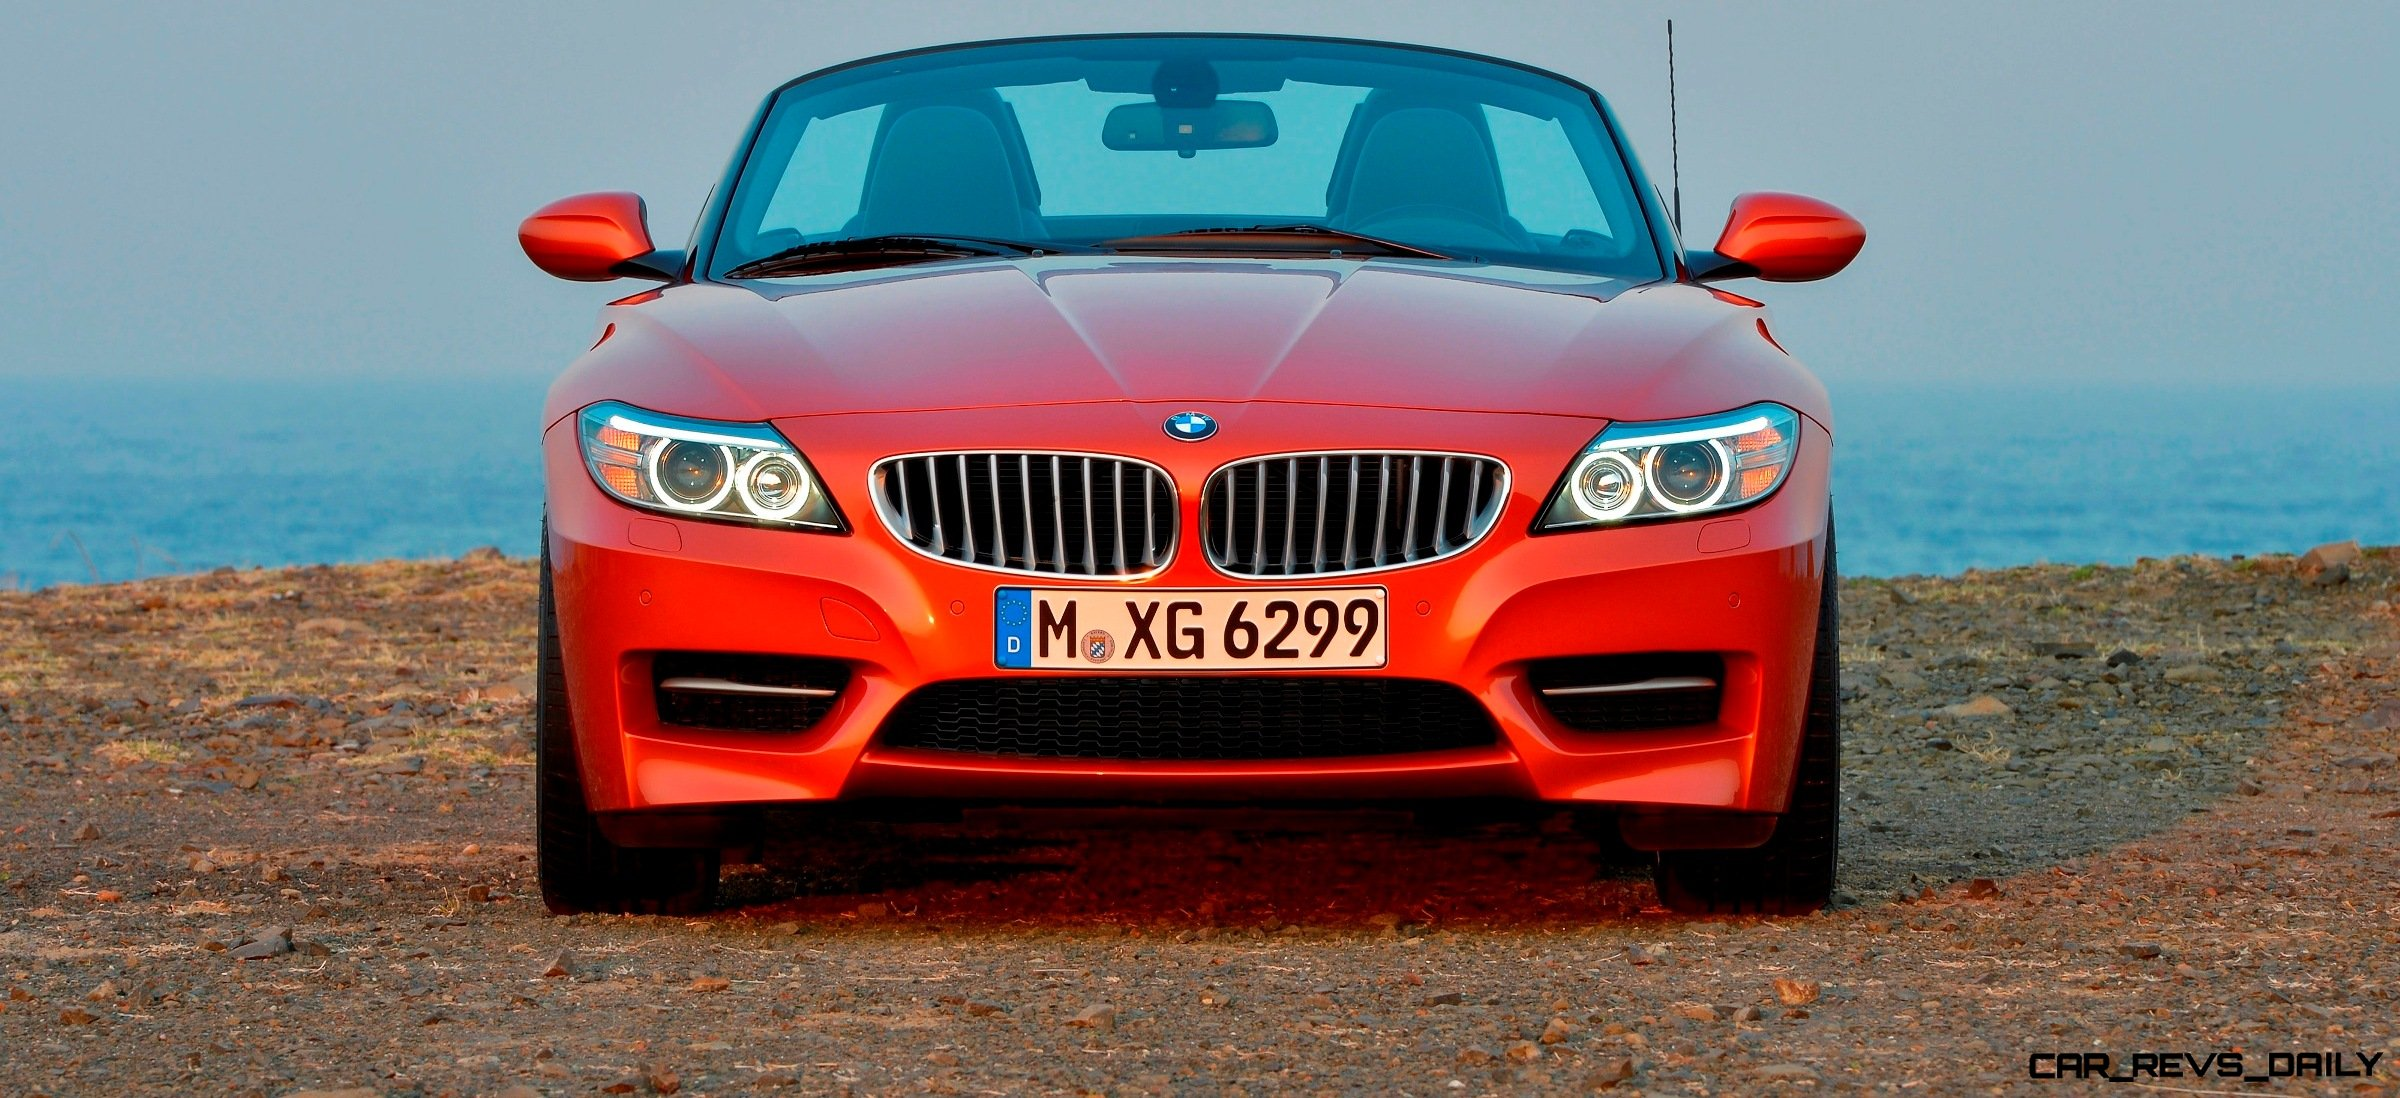 The Curious Case Of The BMW Zs Sales Drop Since Near - 2014 bmw z4 price